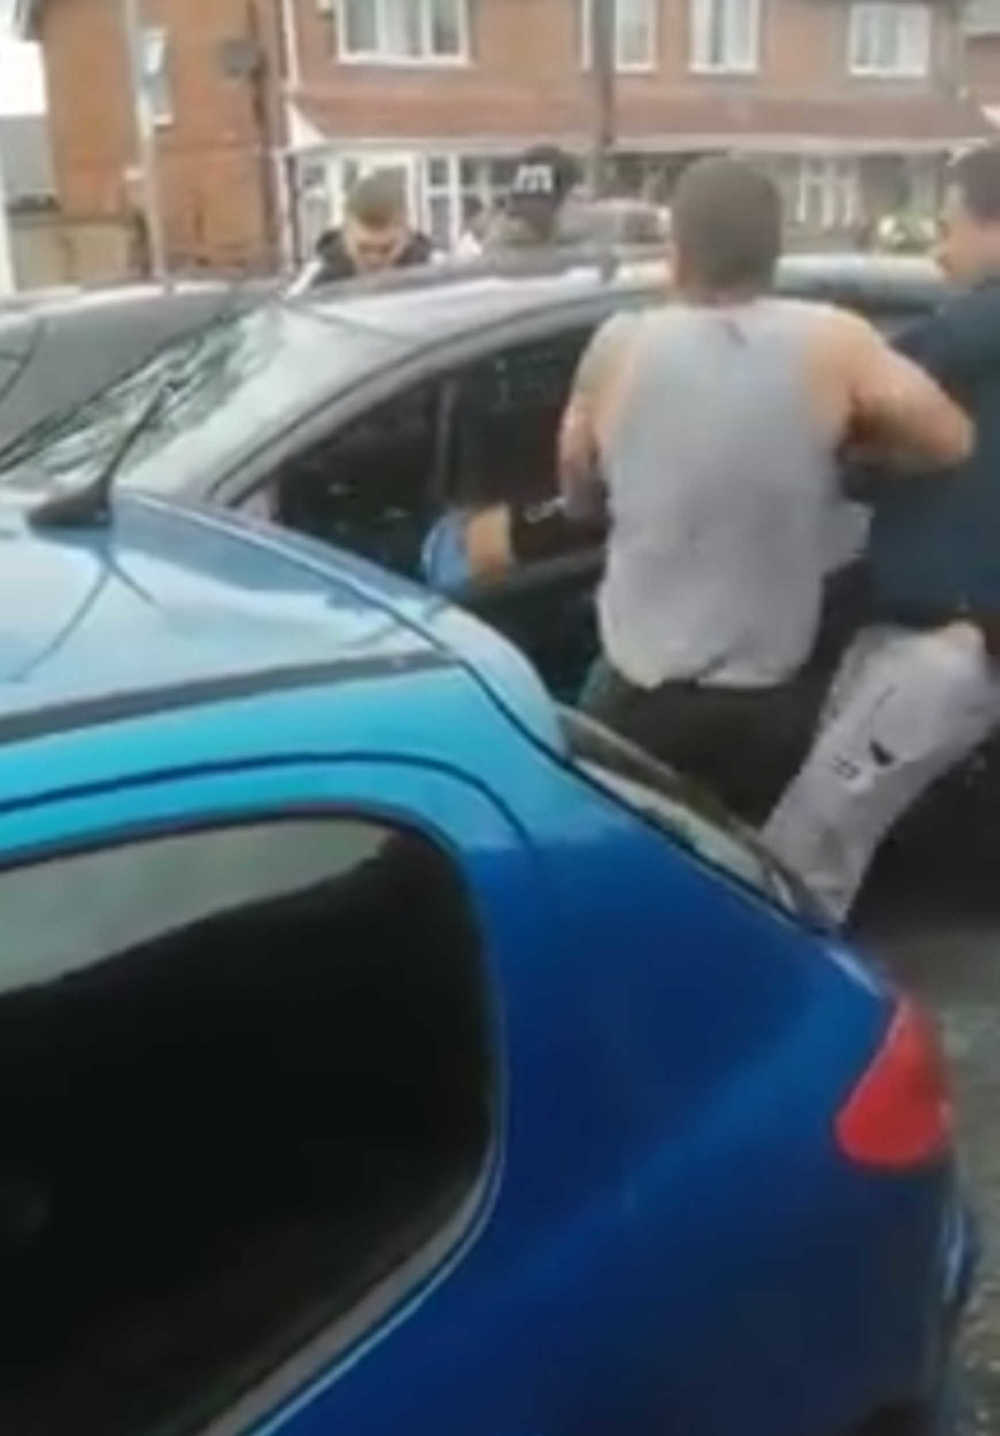 Man dragged through window